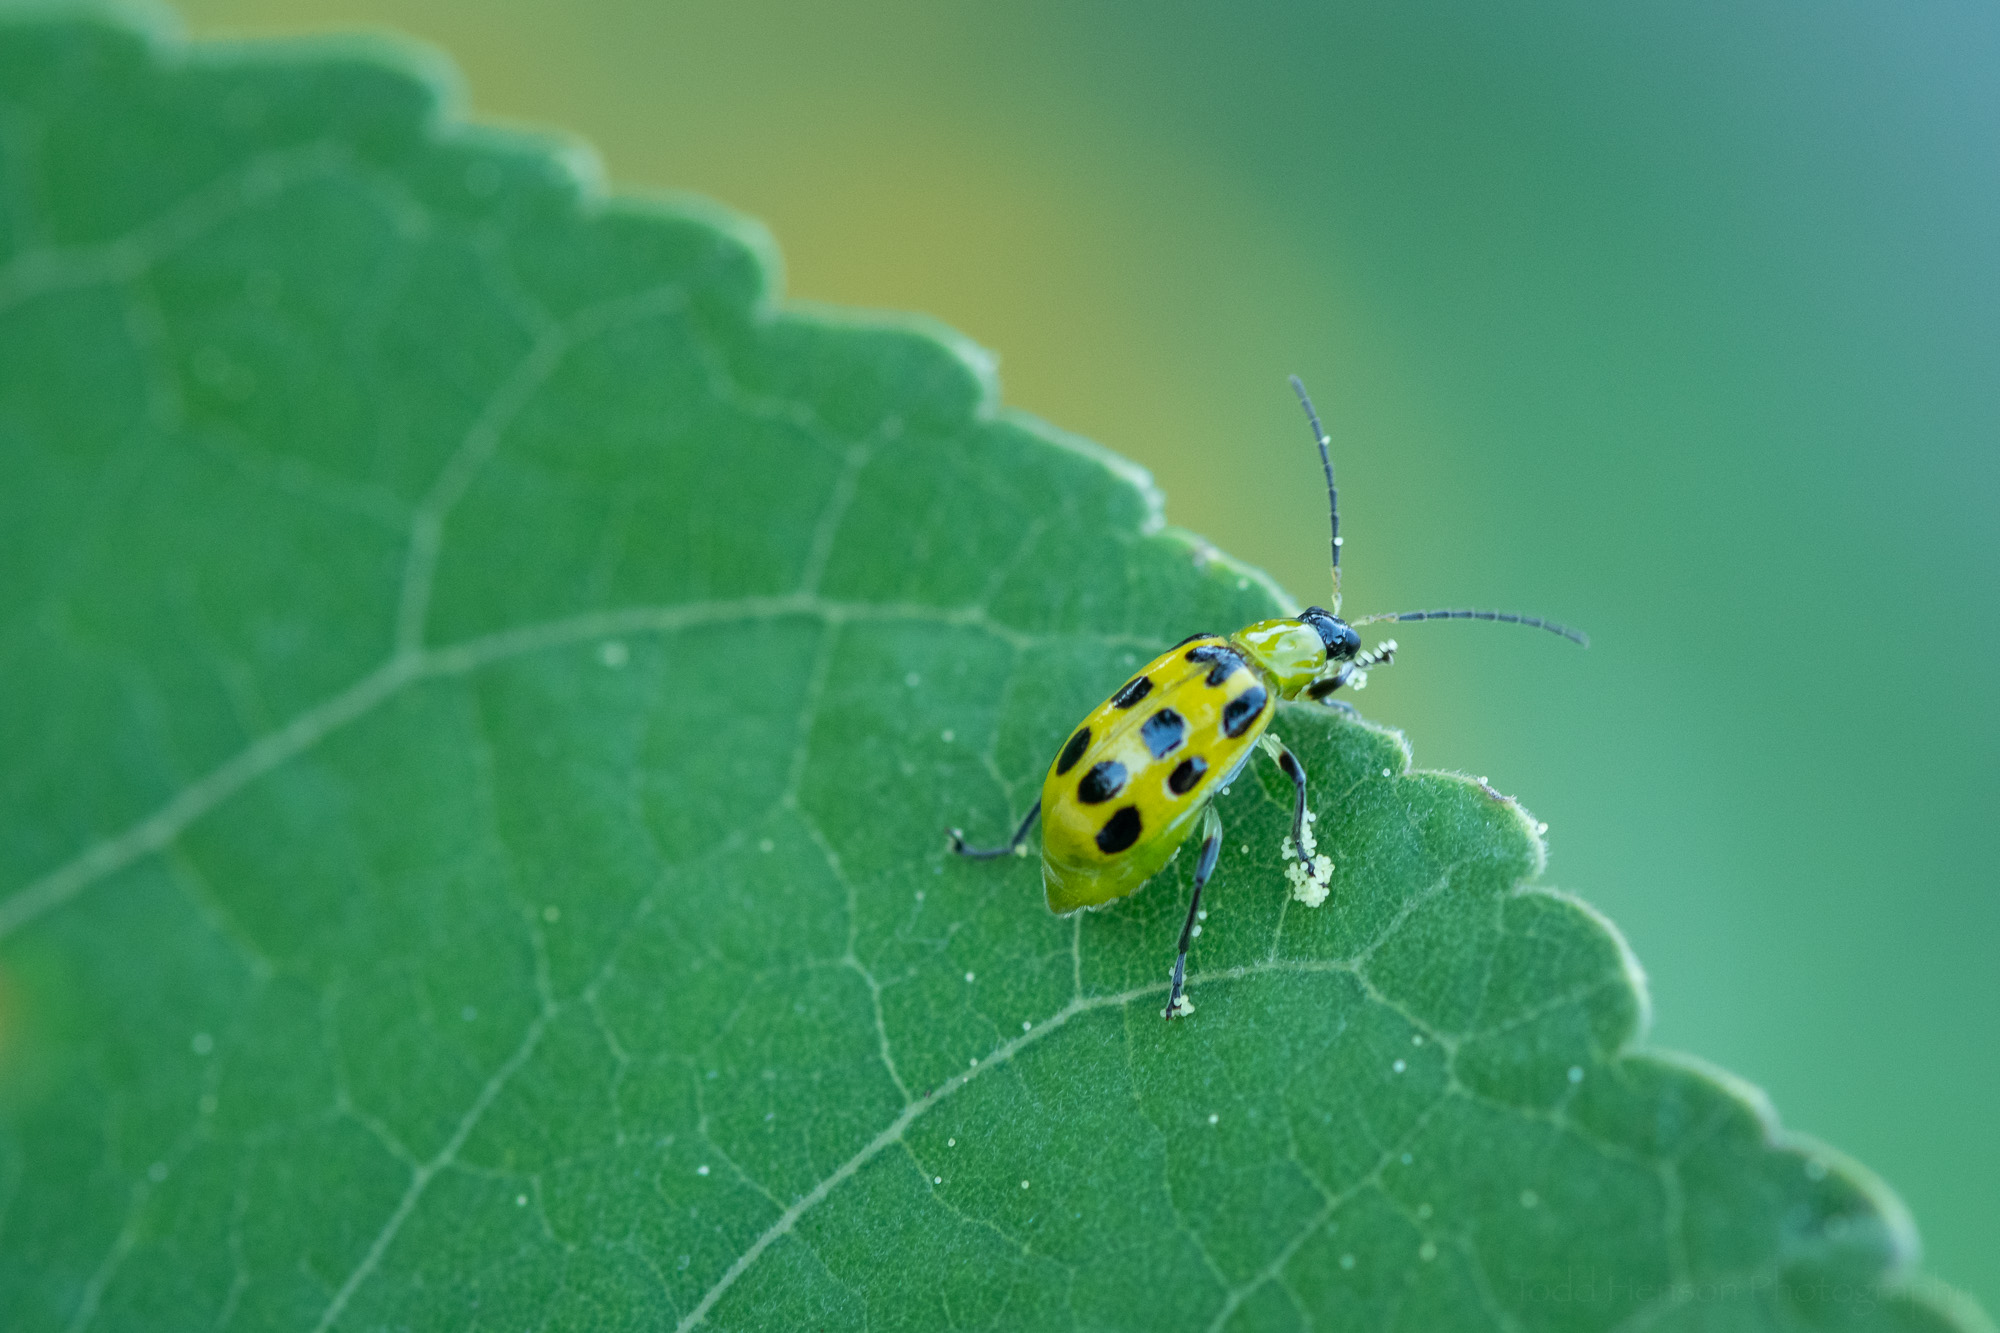 A Spotted Cucumber Beetle with hibiscus pollen on its legs.